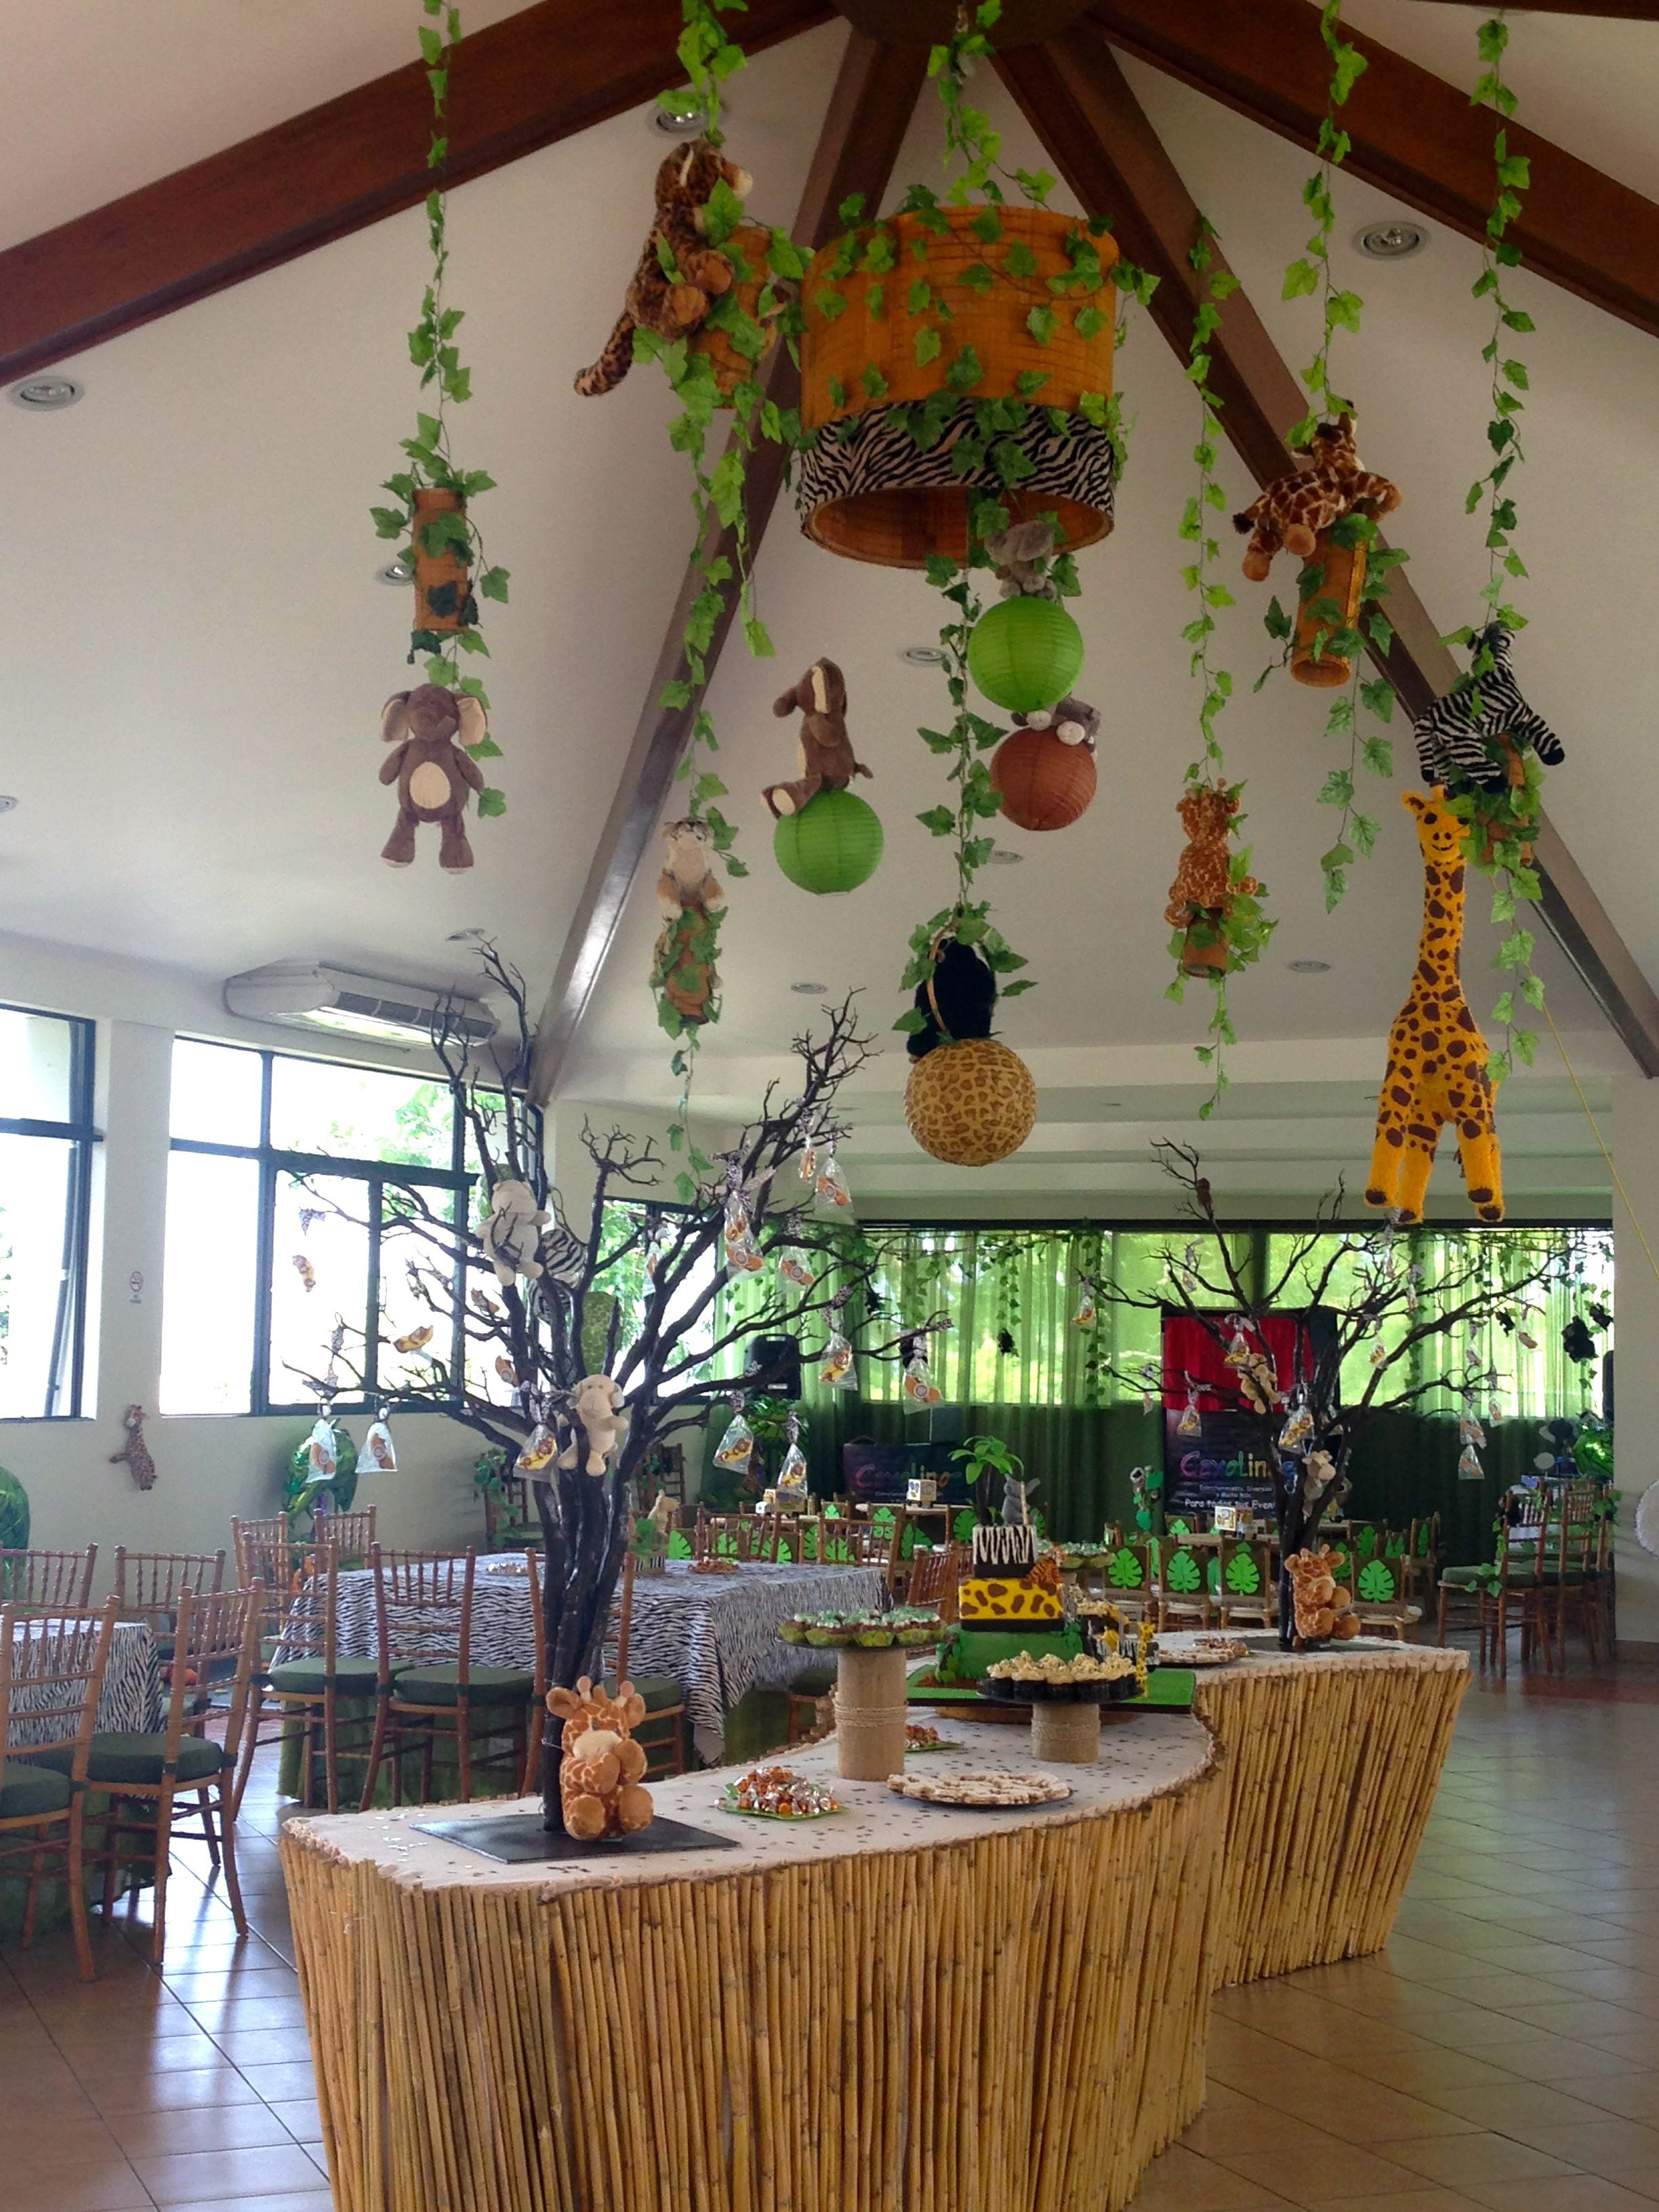 Décoration Safari Anniversaire Decoracion De Techo Fiesta Infantil Jungla Safari